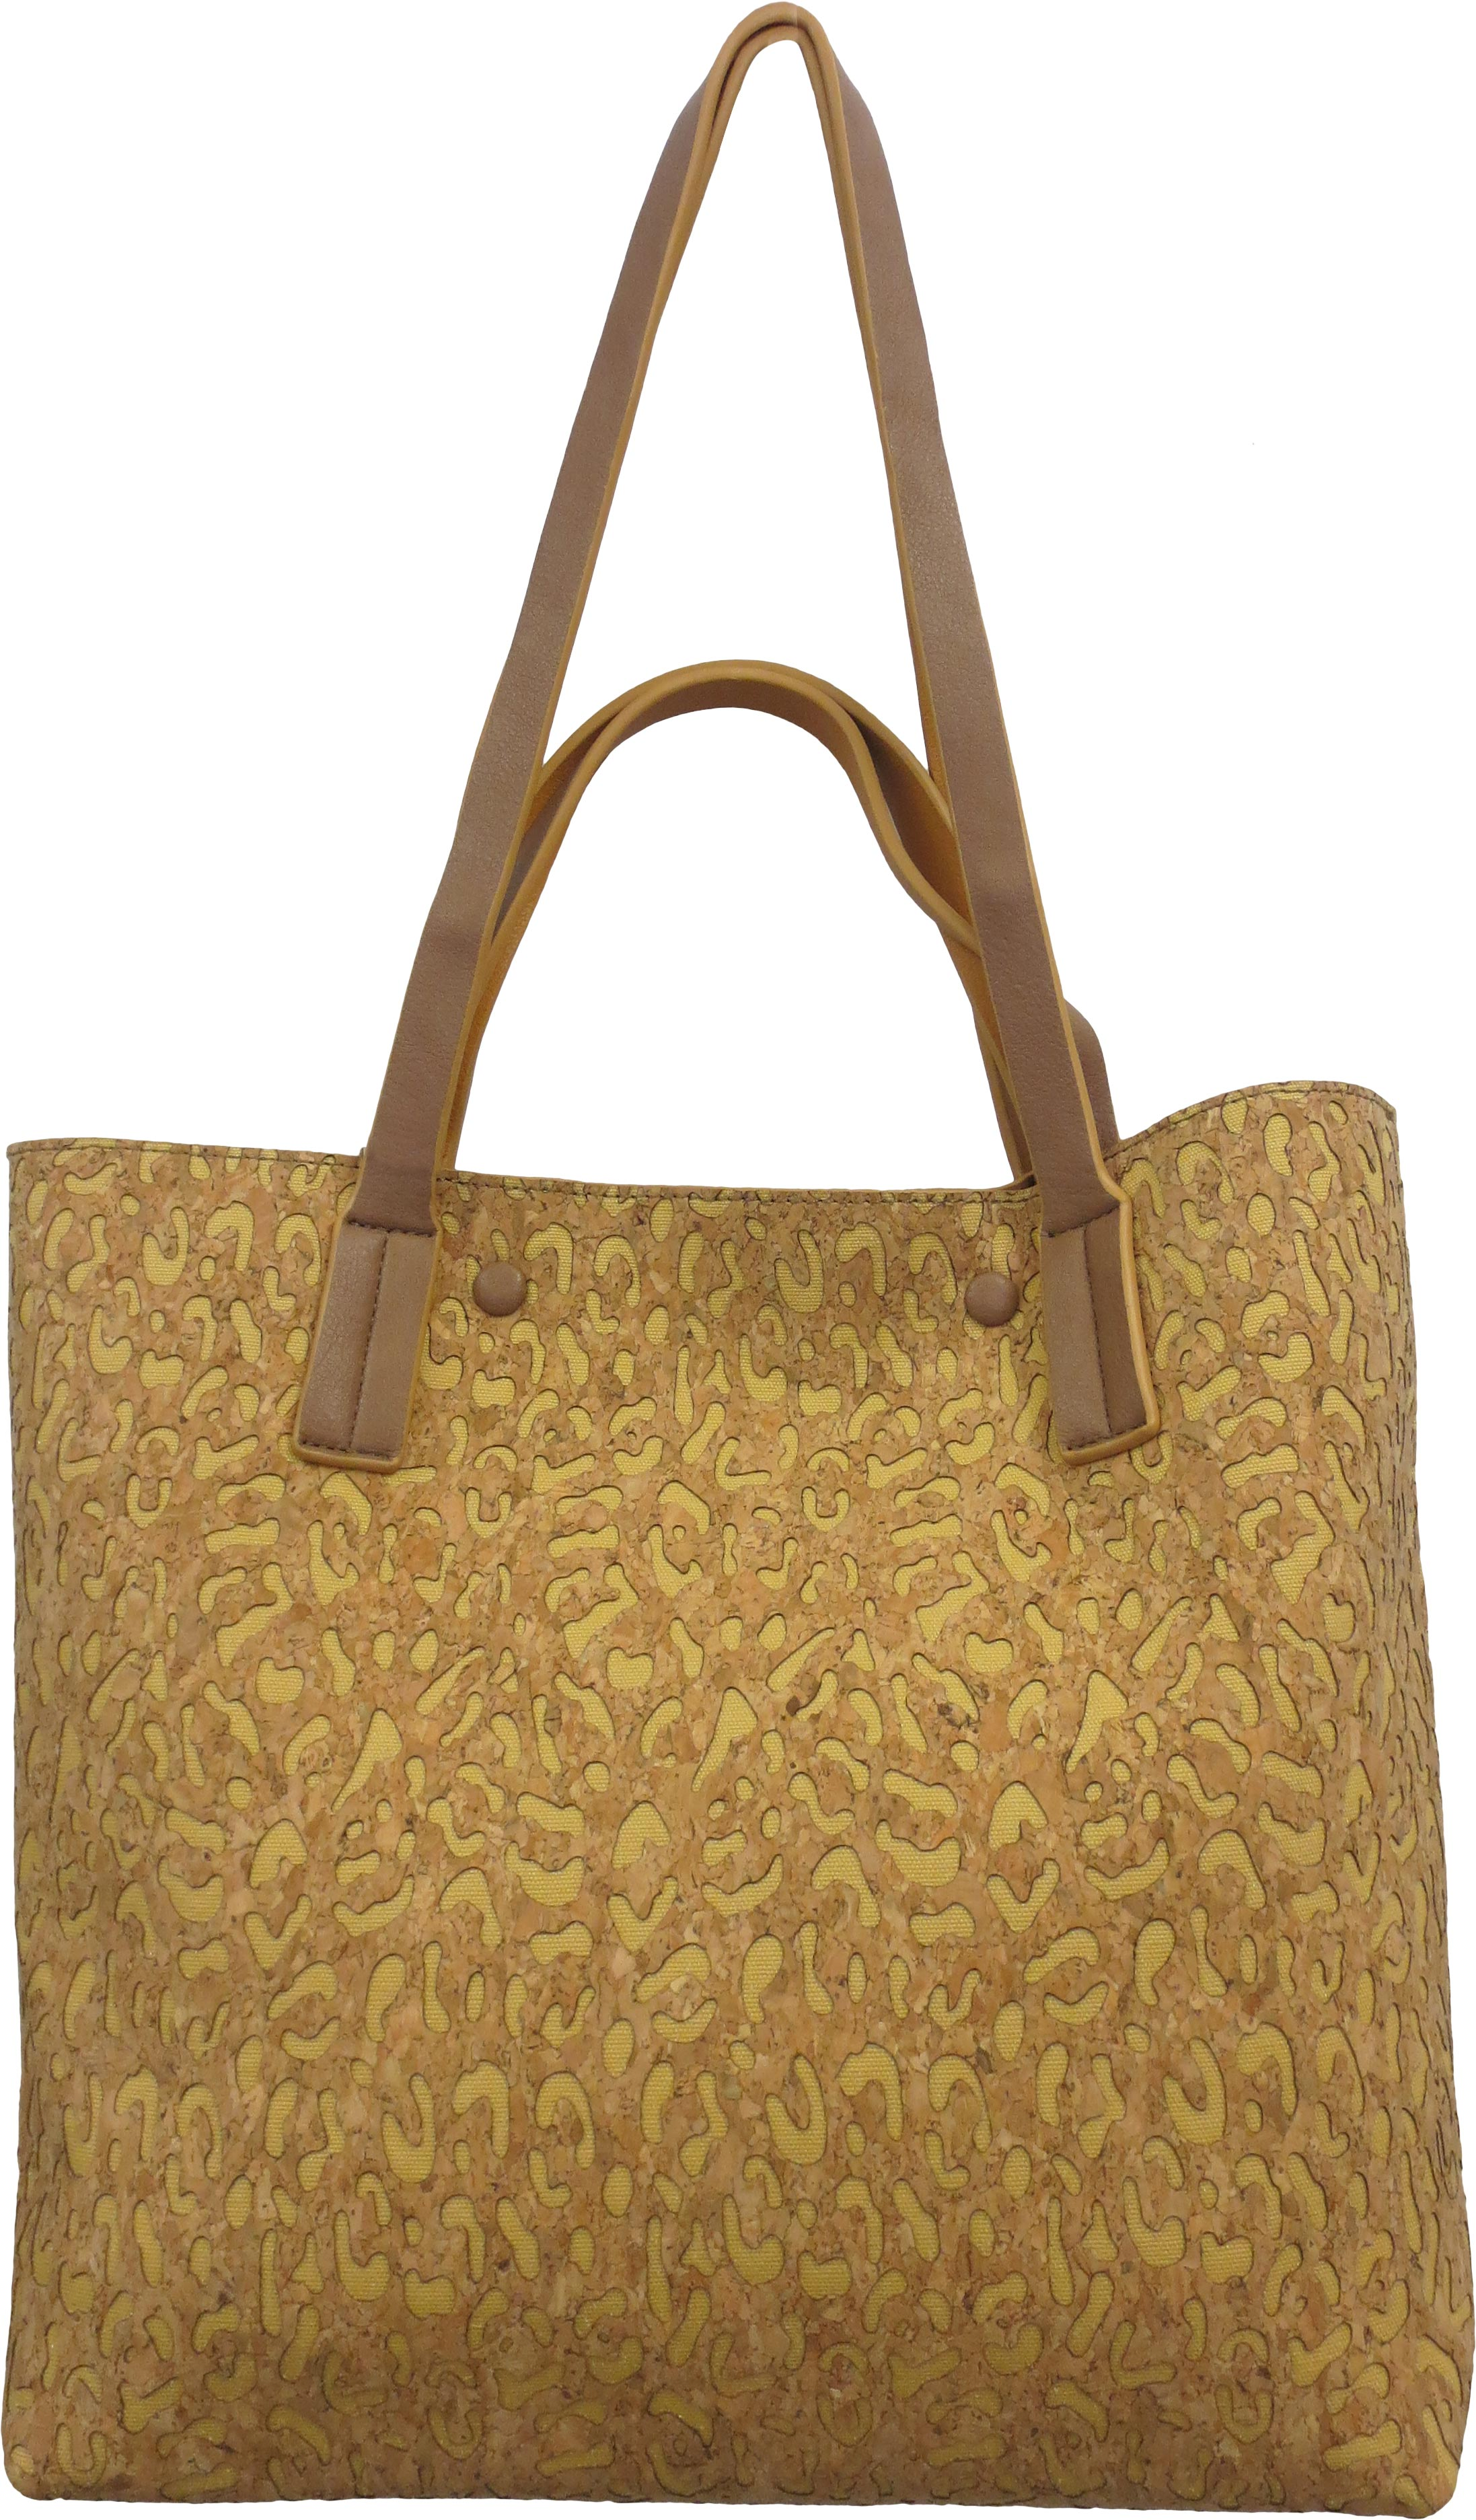 SRB23585 - Tote in Cork with Yellow Accent by Sondra  Roberts. Tote with top handle and shoulder strap in cork. Lazer cut leopard pattern with color inset. Imported.